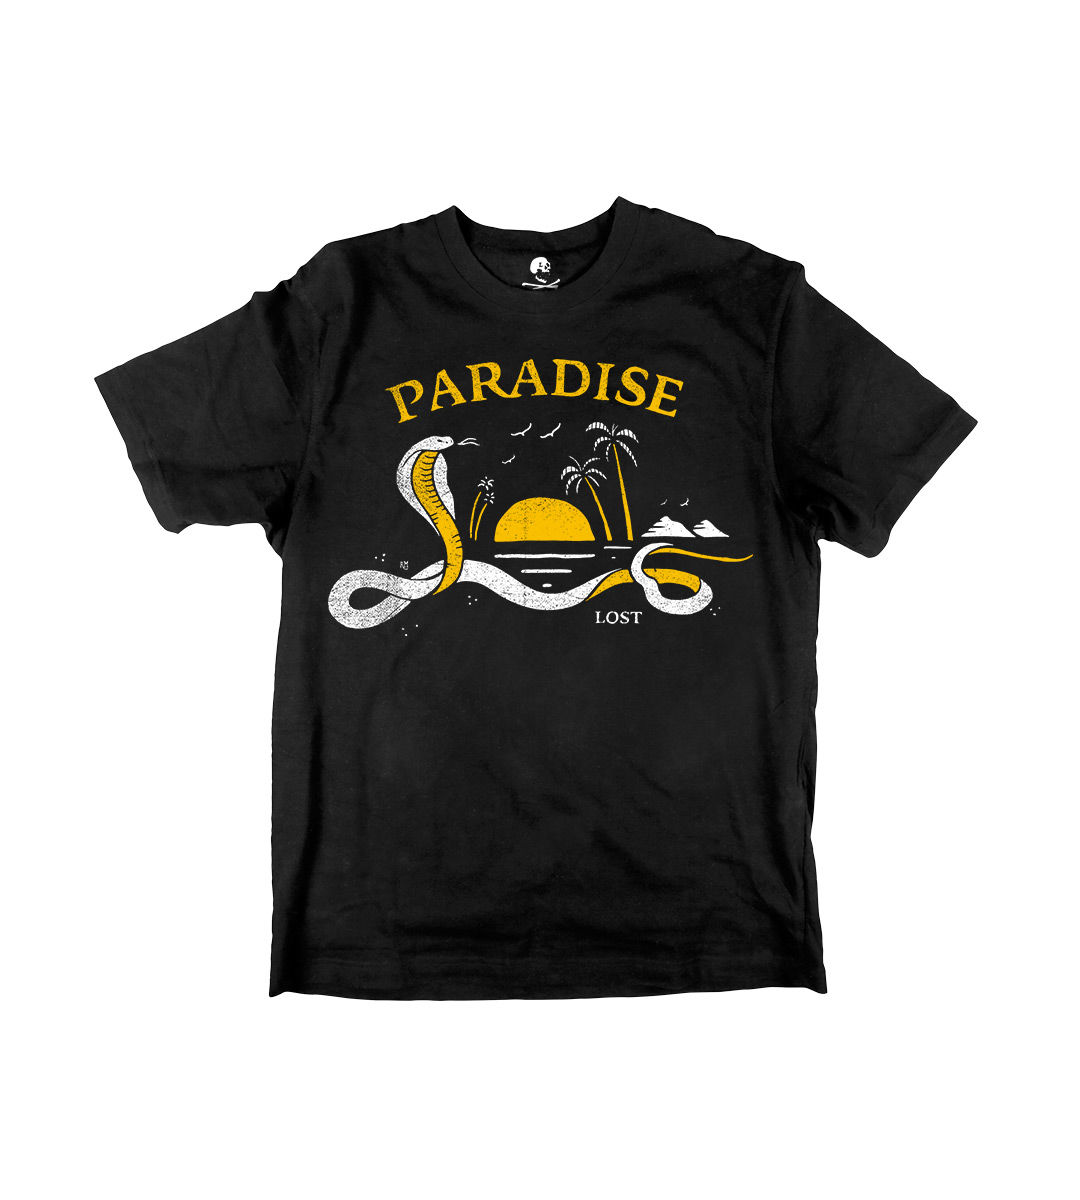 PARADISE LOST - product image